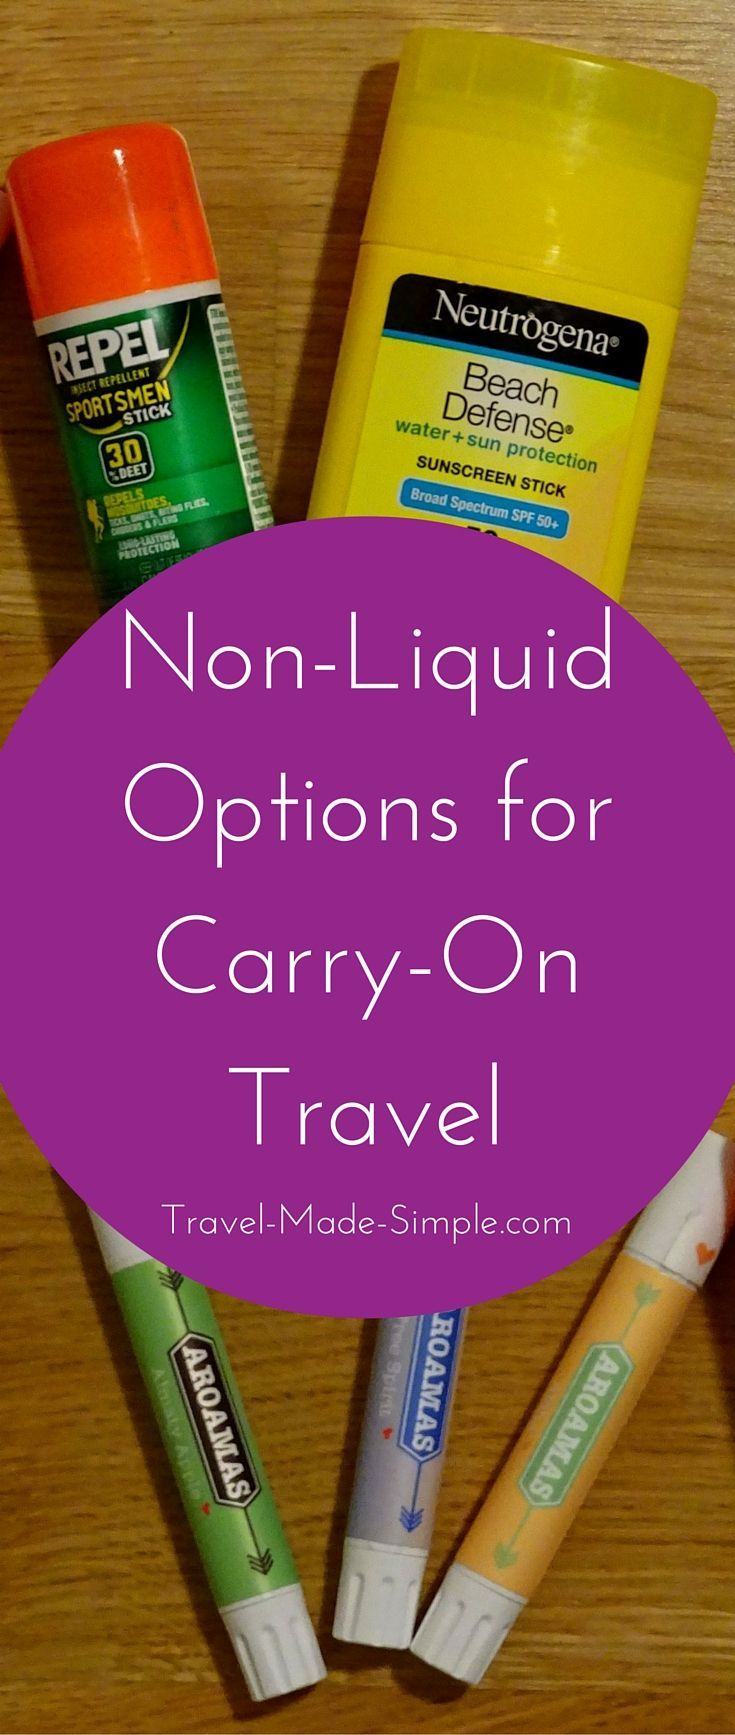 Liquids restrictions can put a damper on your efforts to travel carry-on only. But there are tons of solid non-liquid options to help make it easier. Solid perfume, solid shampoo, even solid sunscreen and solid bug repellent are great alternatives to the liquid versions. packing carry-on only | flying carry-on only | packing tips | non-liquid toiletries for travel